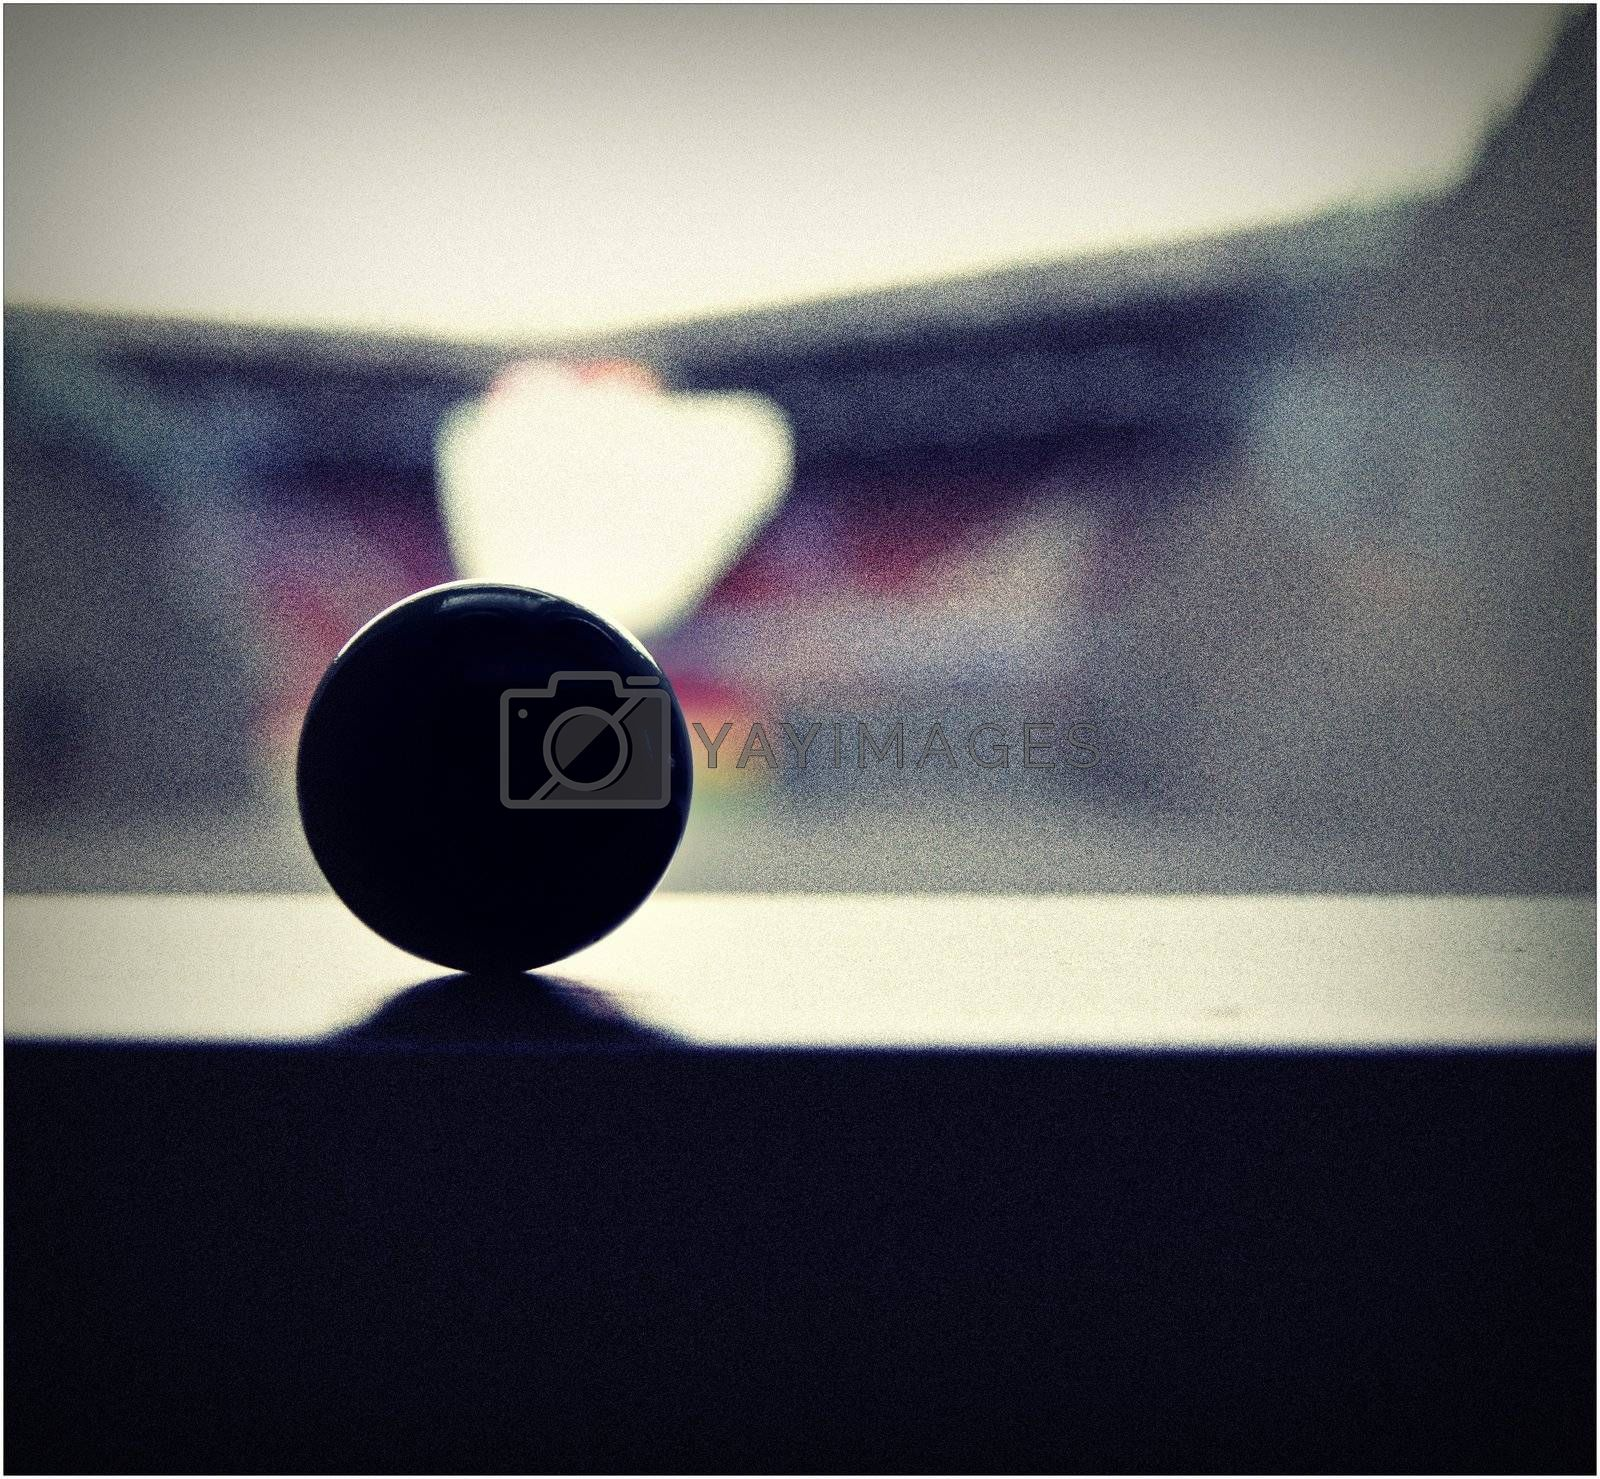 The photograph of a small marble (ball) in front of a window overlooking a soccer stadium.